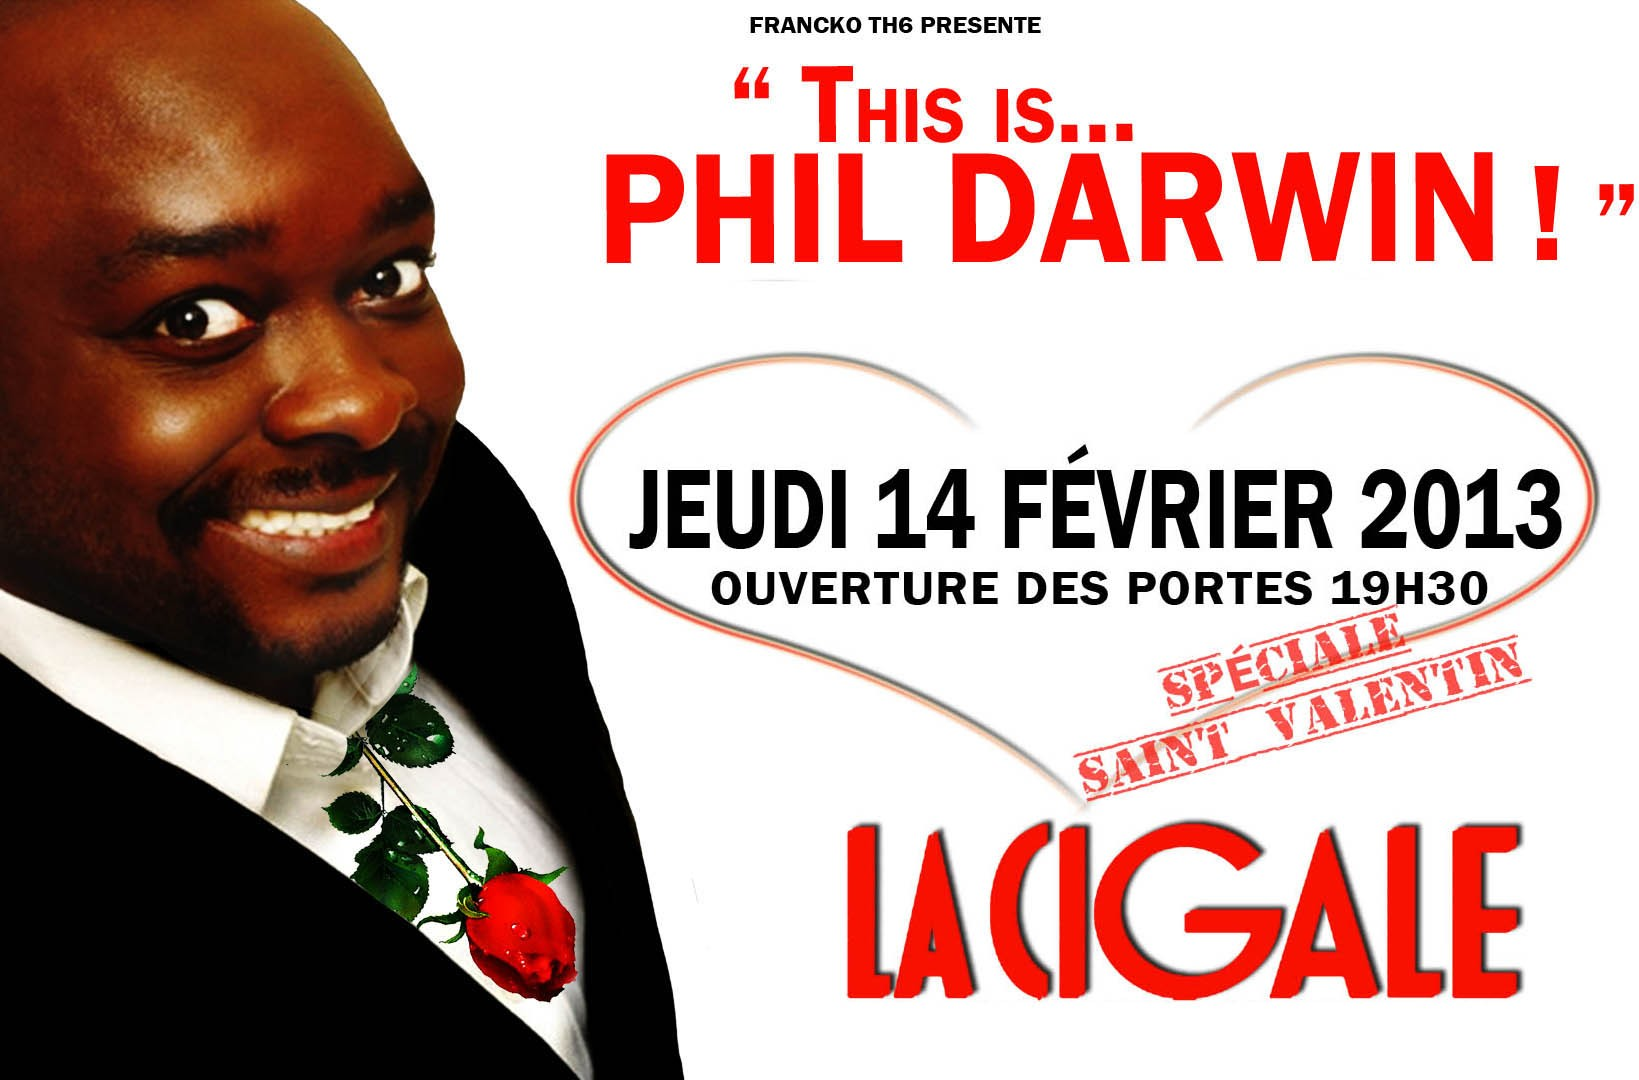 La Cigale - Paris - PHIL DARWIN